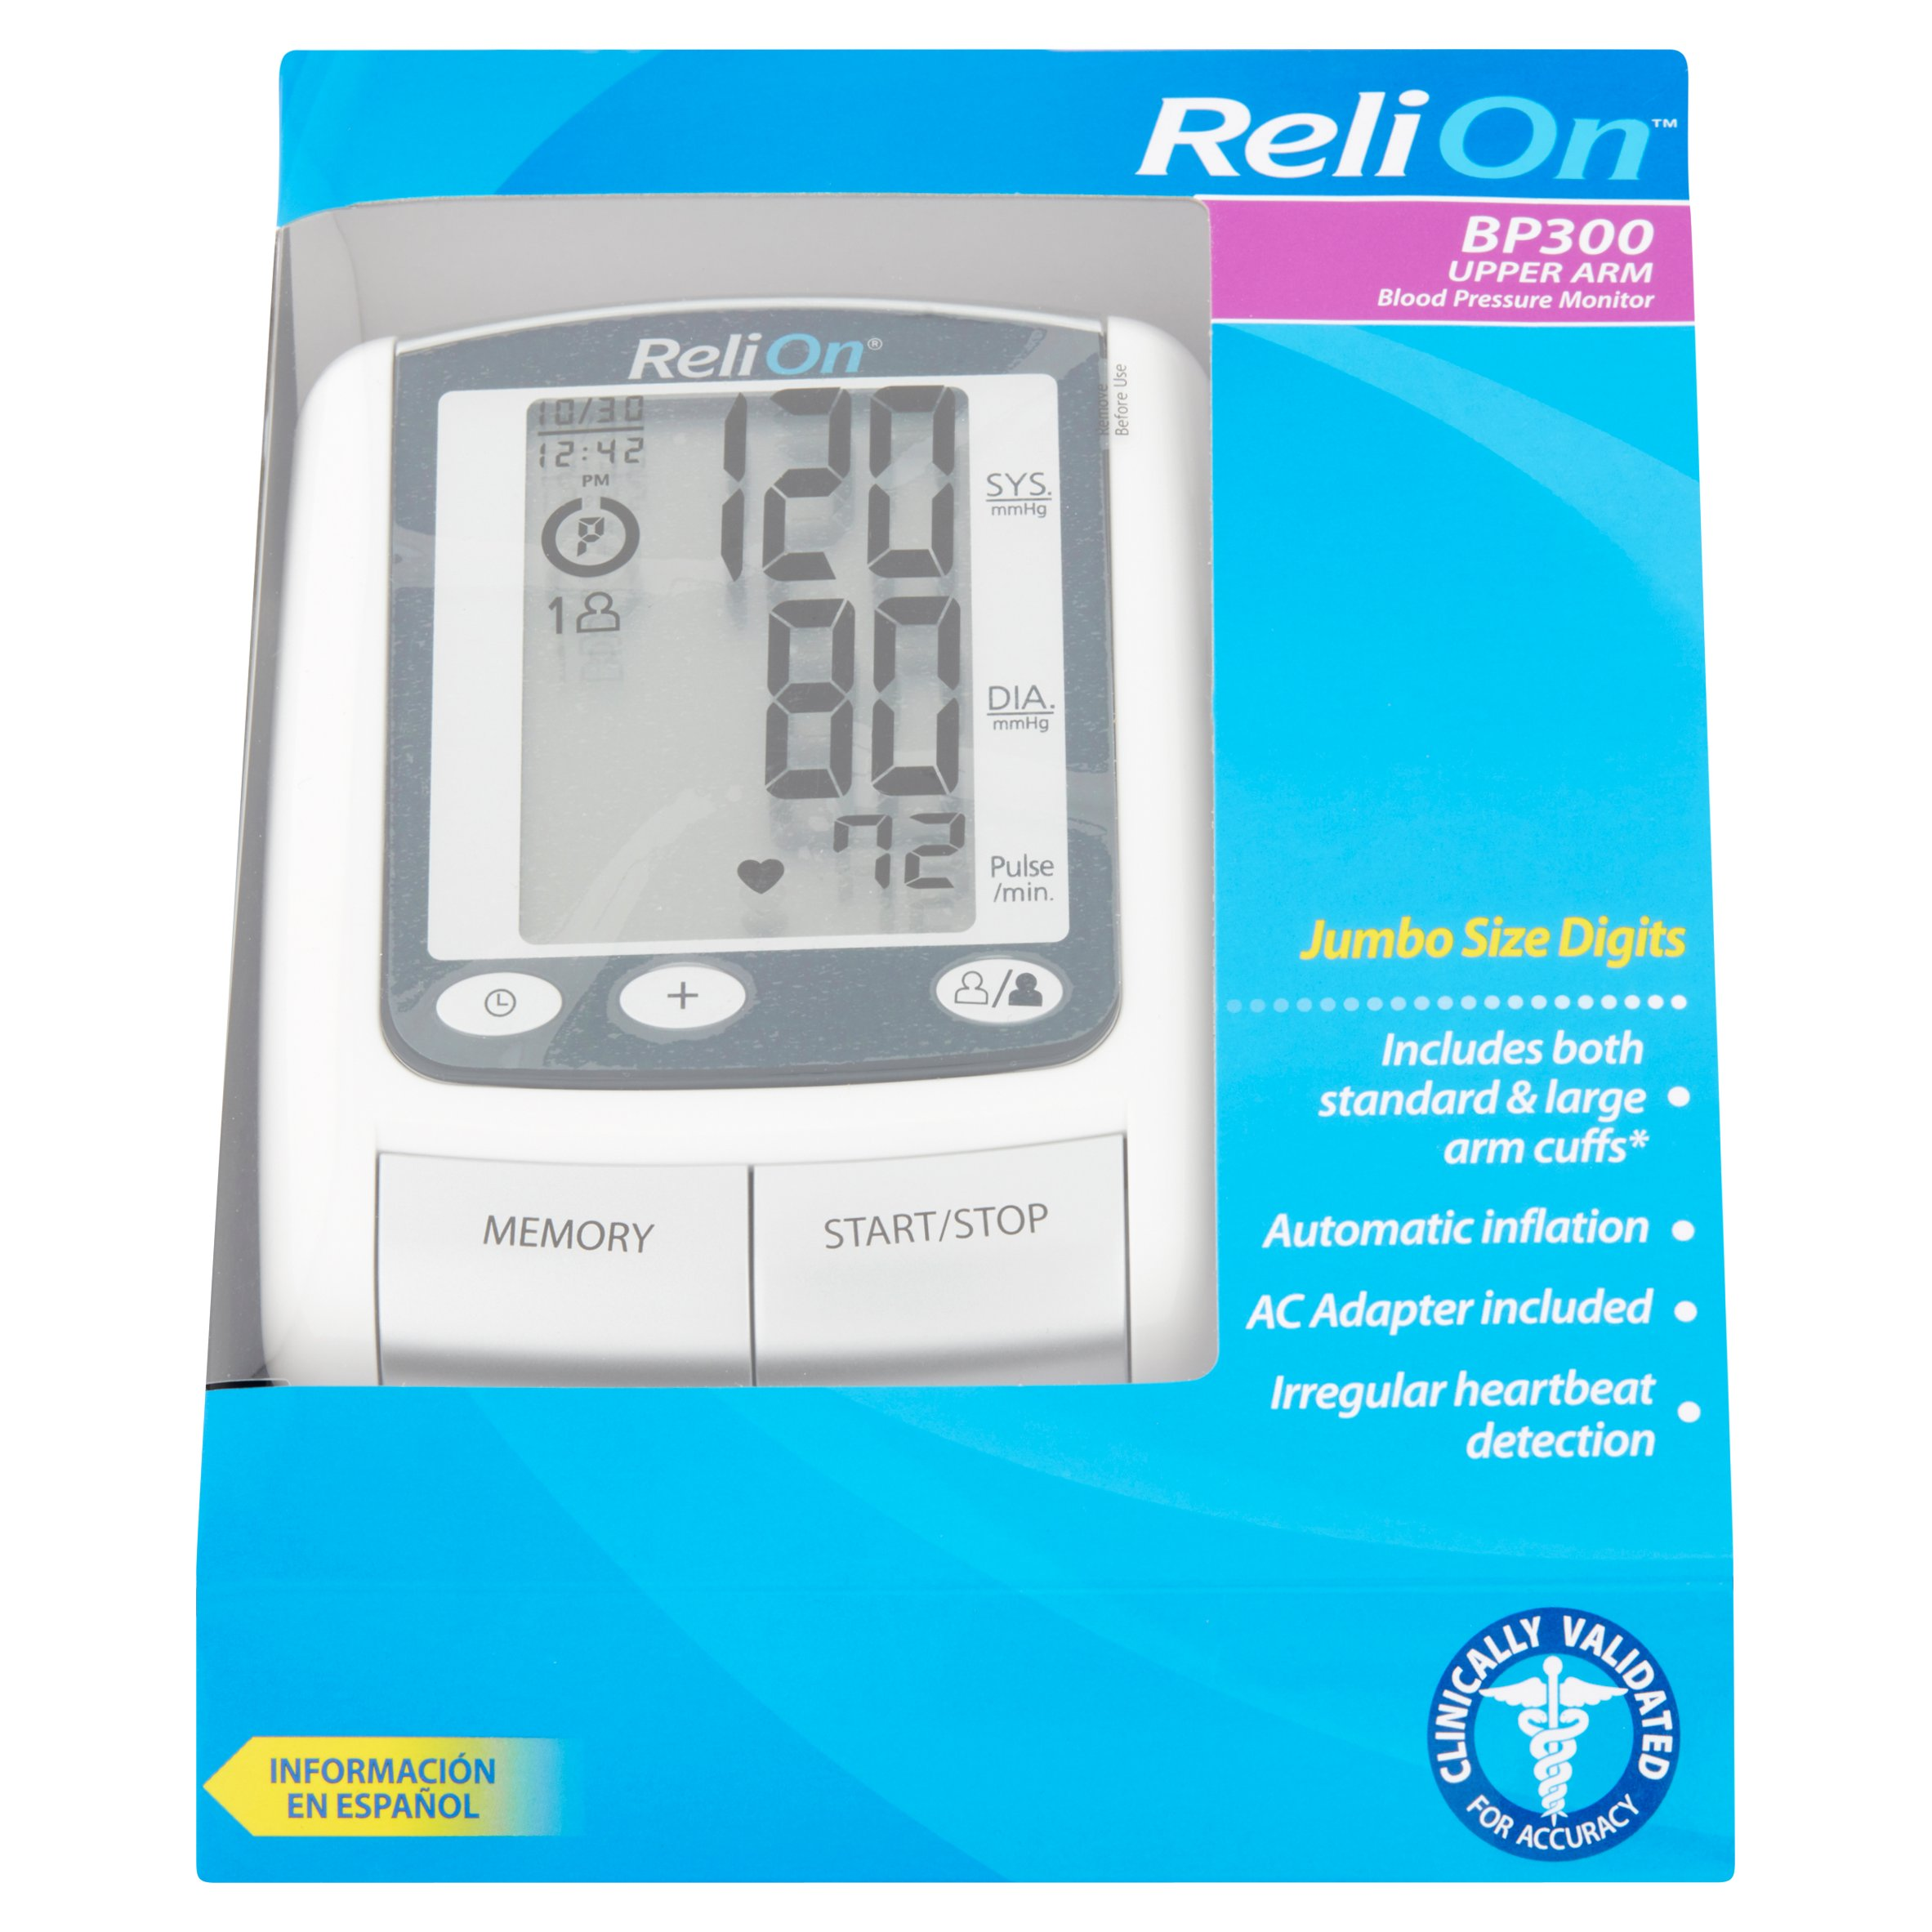 ReliOn BP300 Upper Arm Blood Pressure Monitor